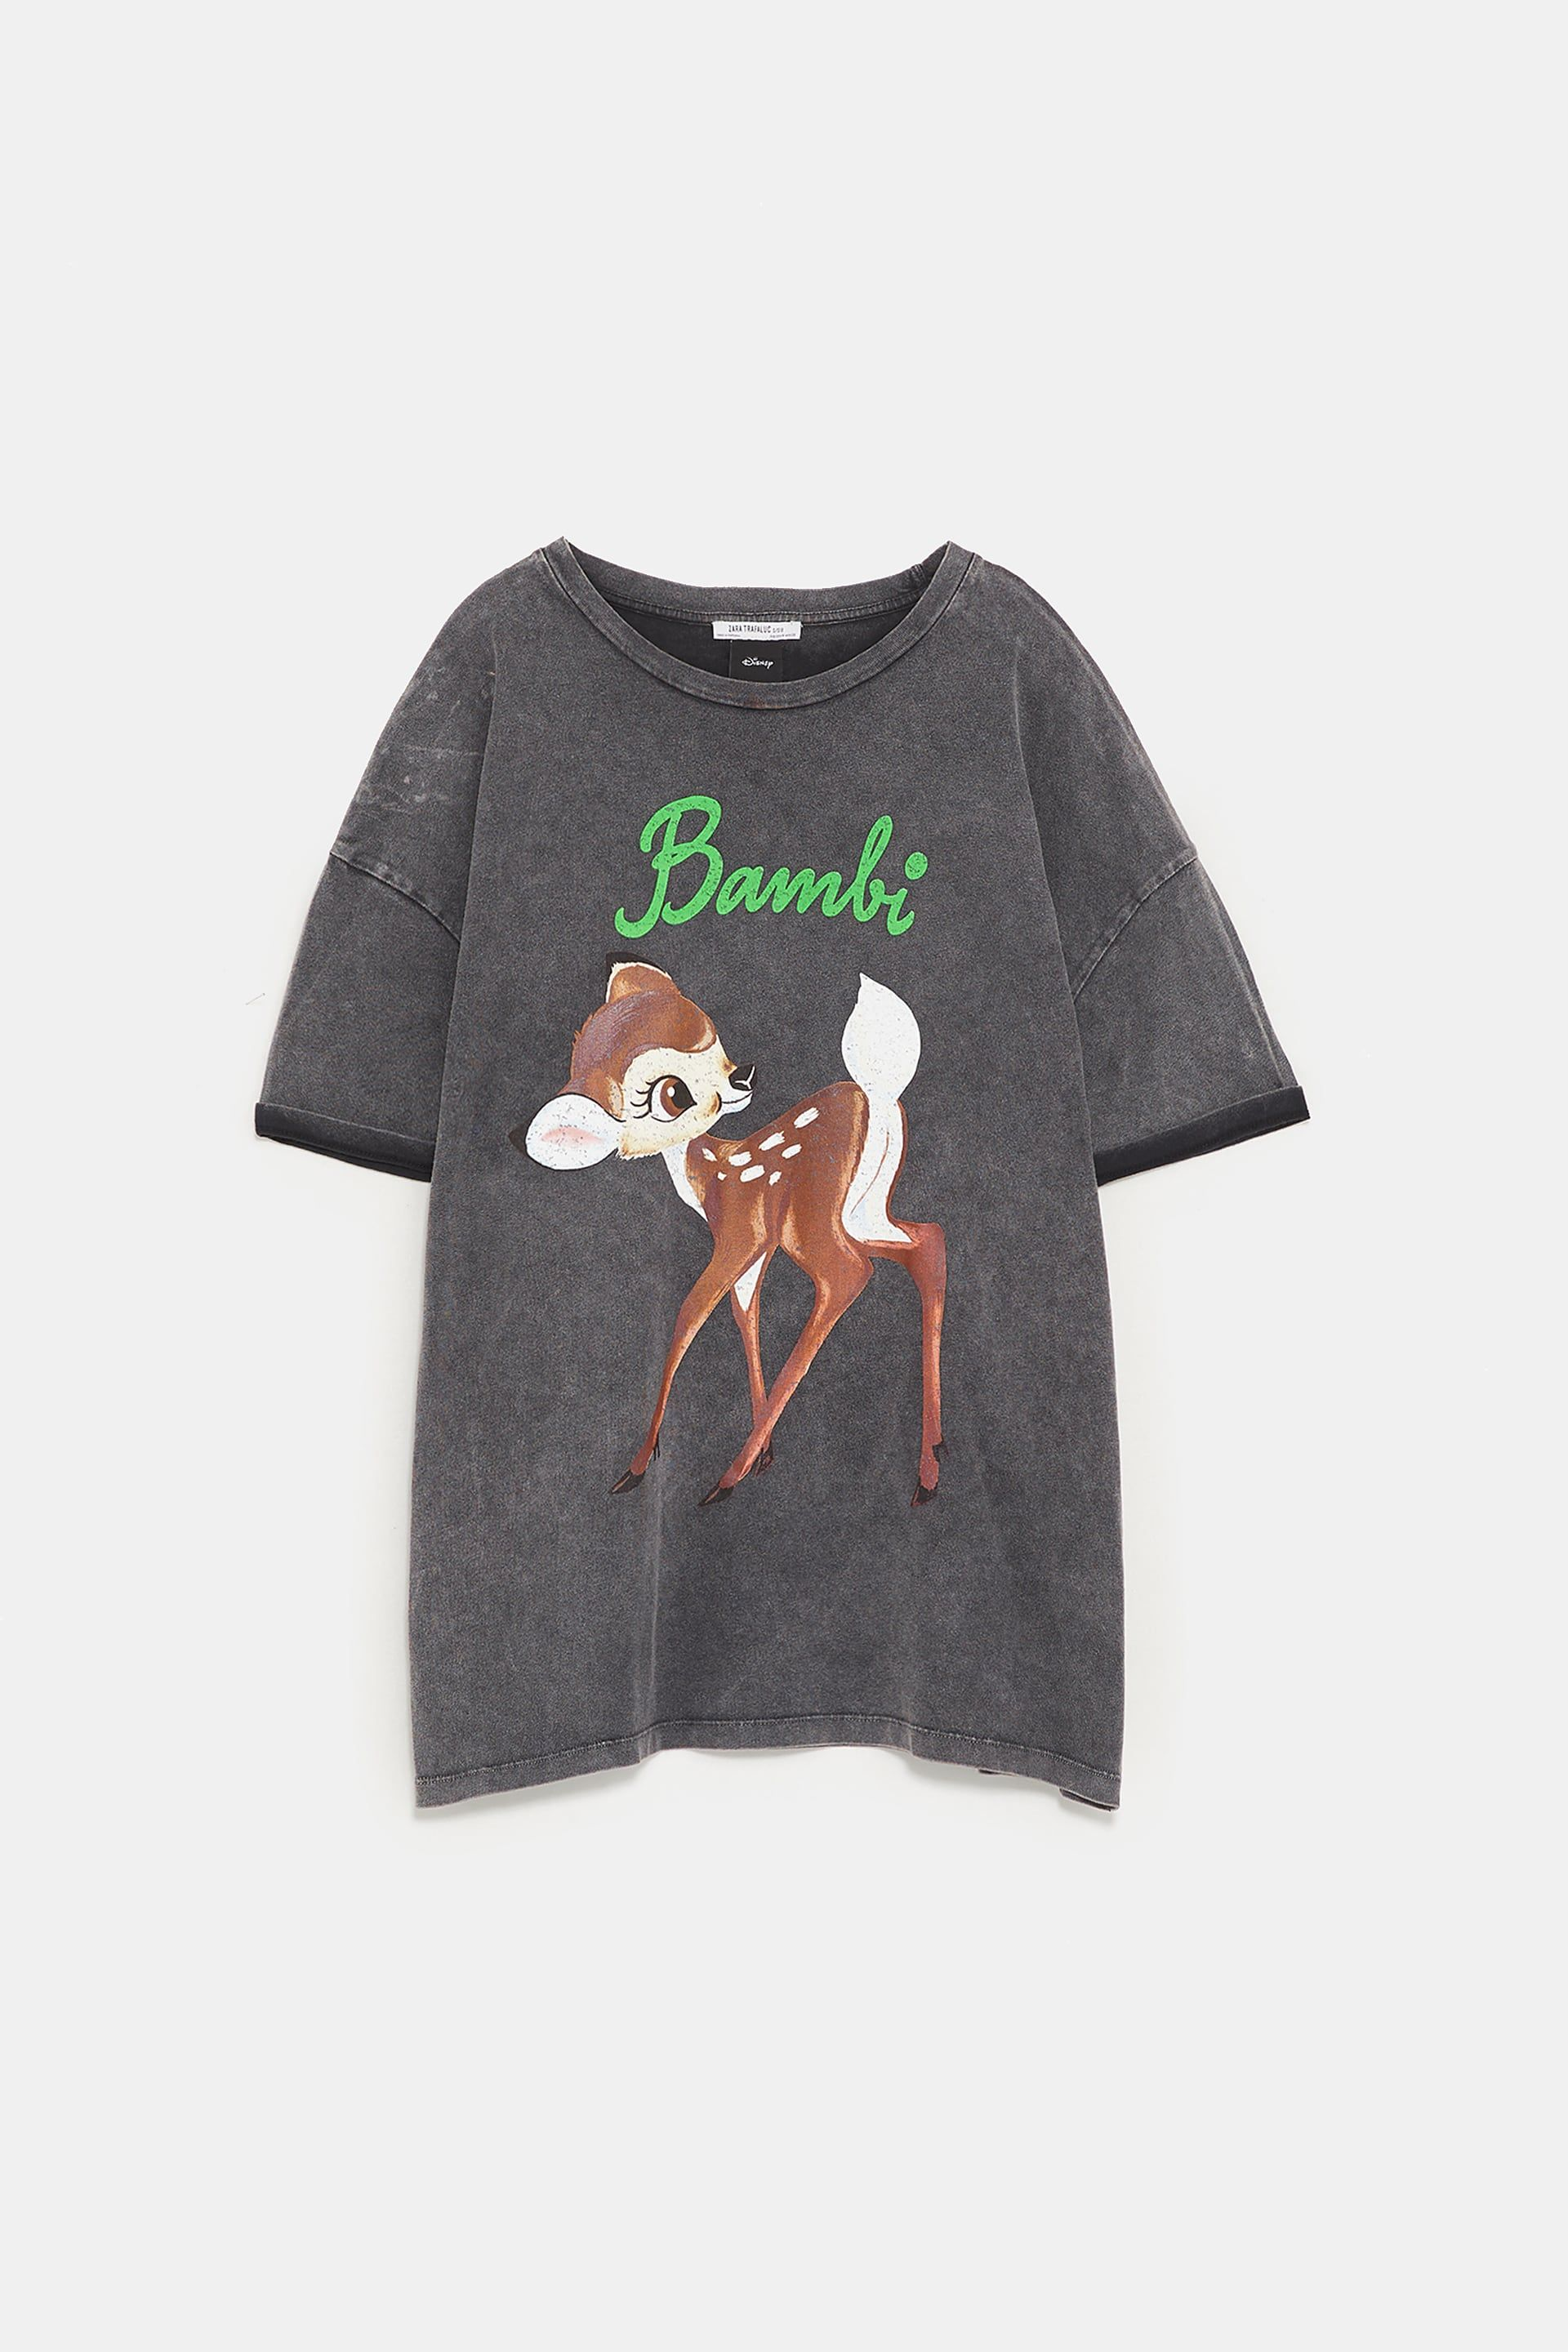 5672ec3c2a Image 8 of ©DISNEY'S BAMBI T-SHIRT from Zara | outfits in 2019 ...